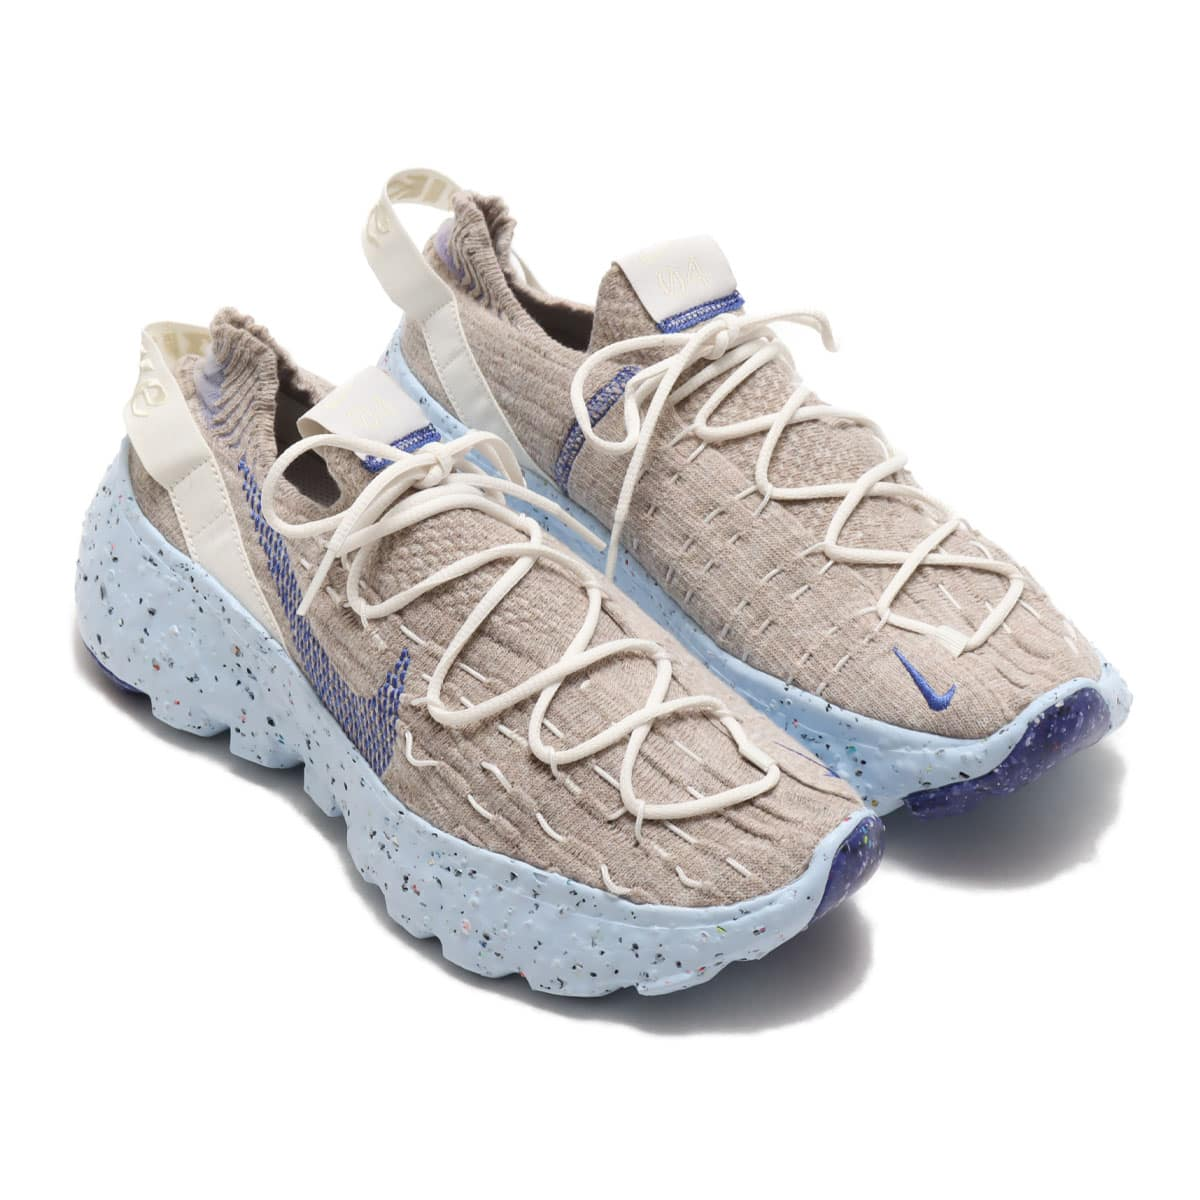 NIKE SPACE HIPPIE 04 SAIL/ASTRONOMY BLUE-FOSSIL-CHAMBRAY BLUE 20FA-I_photo_large